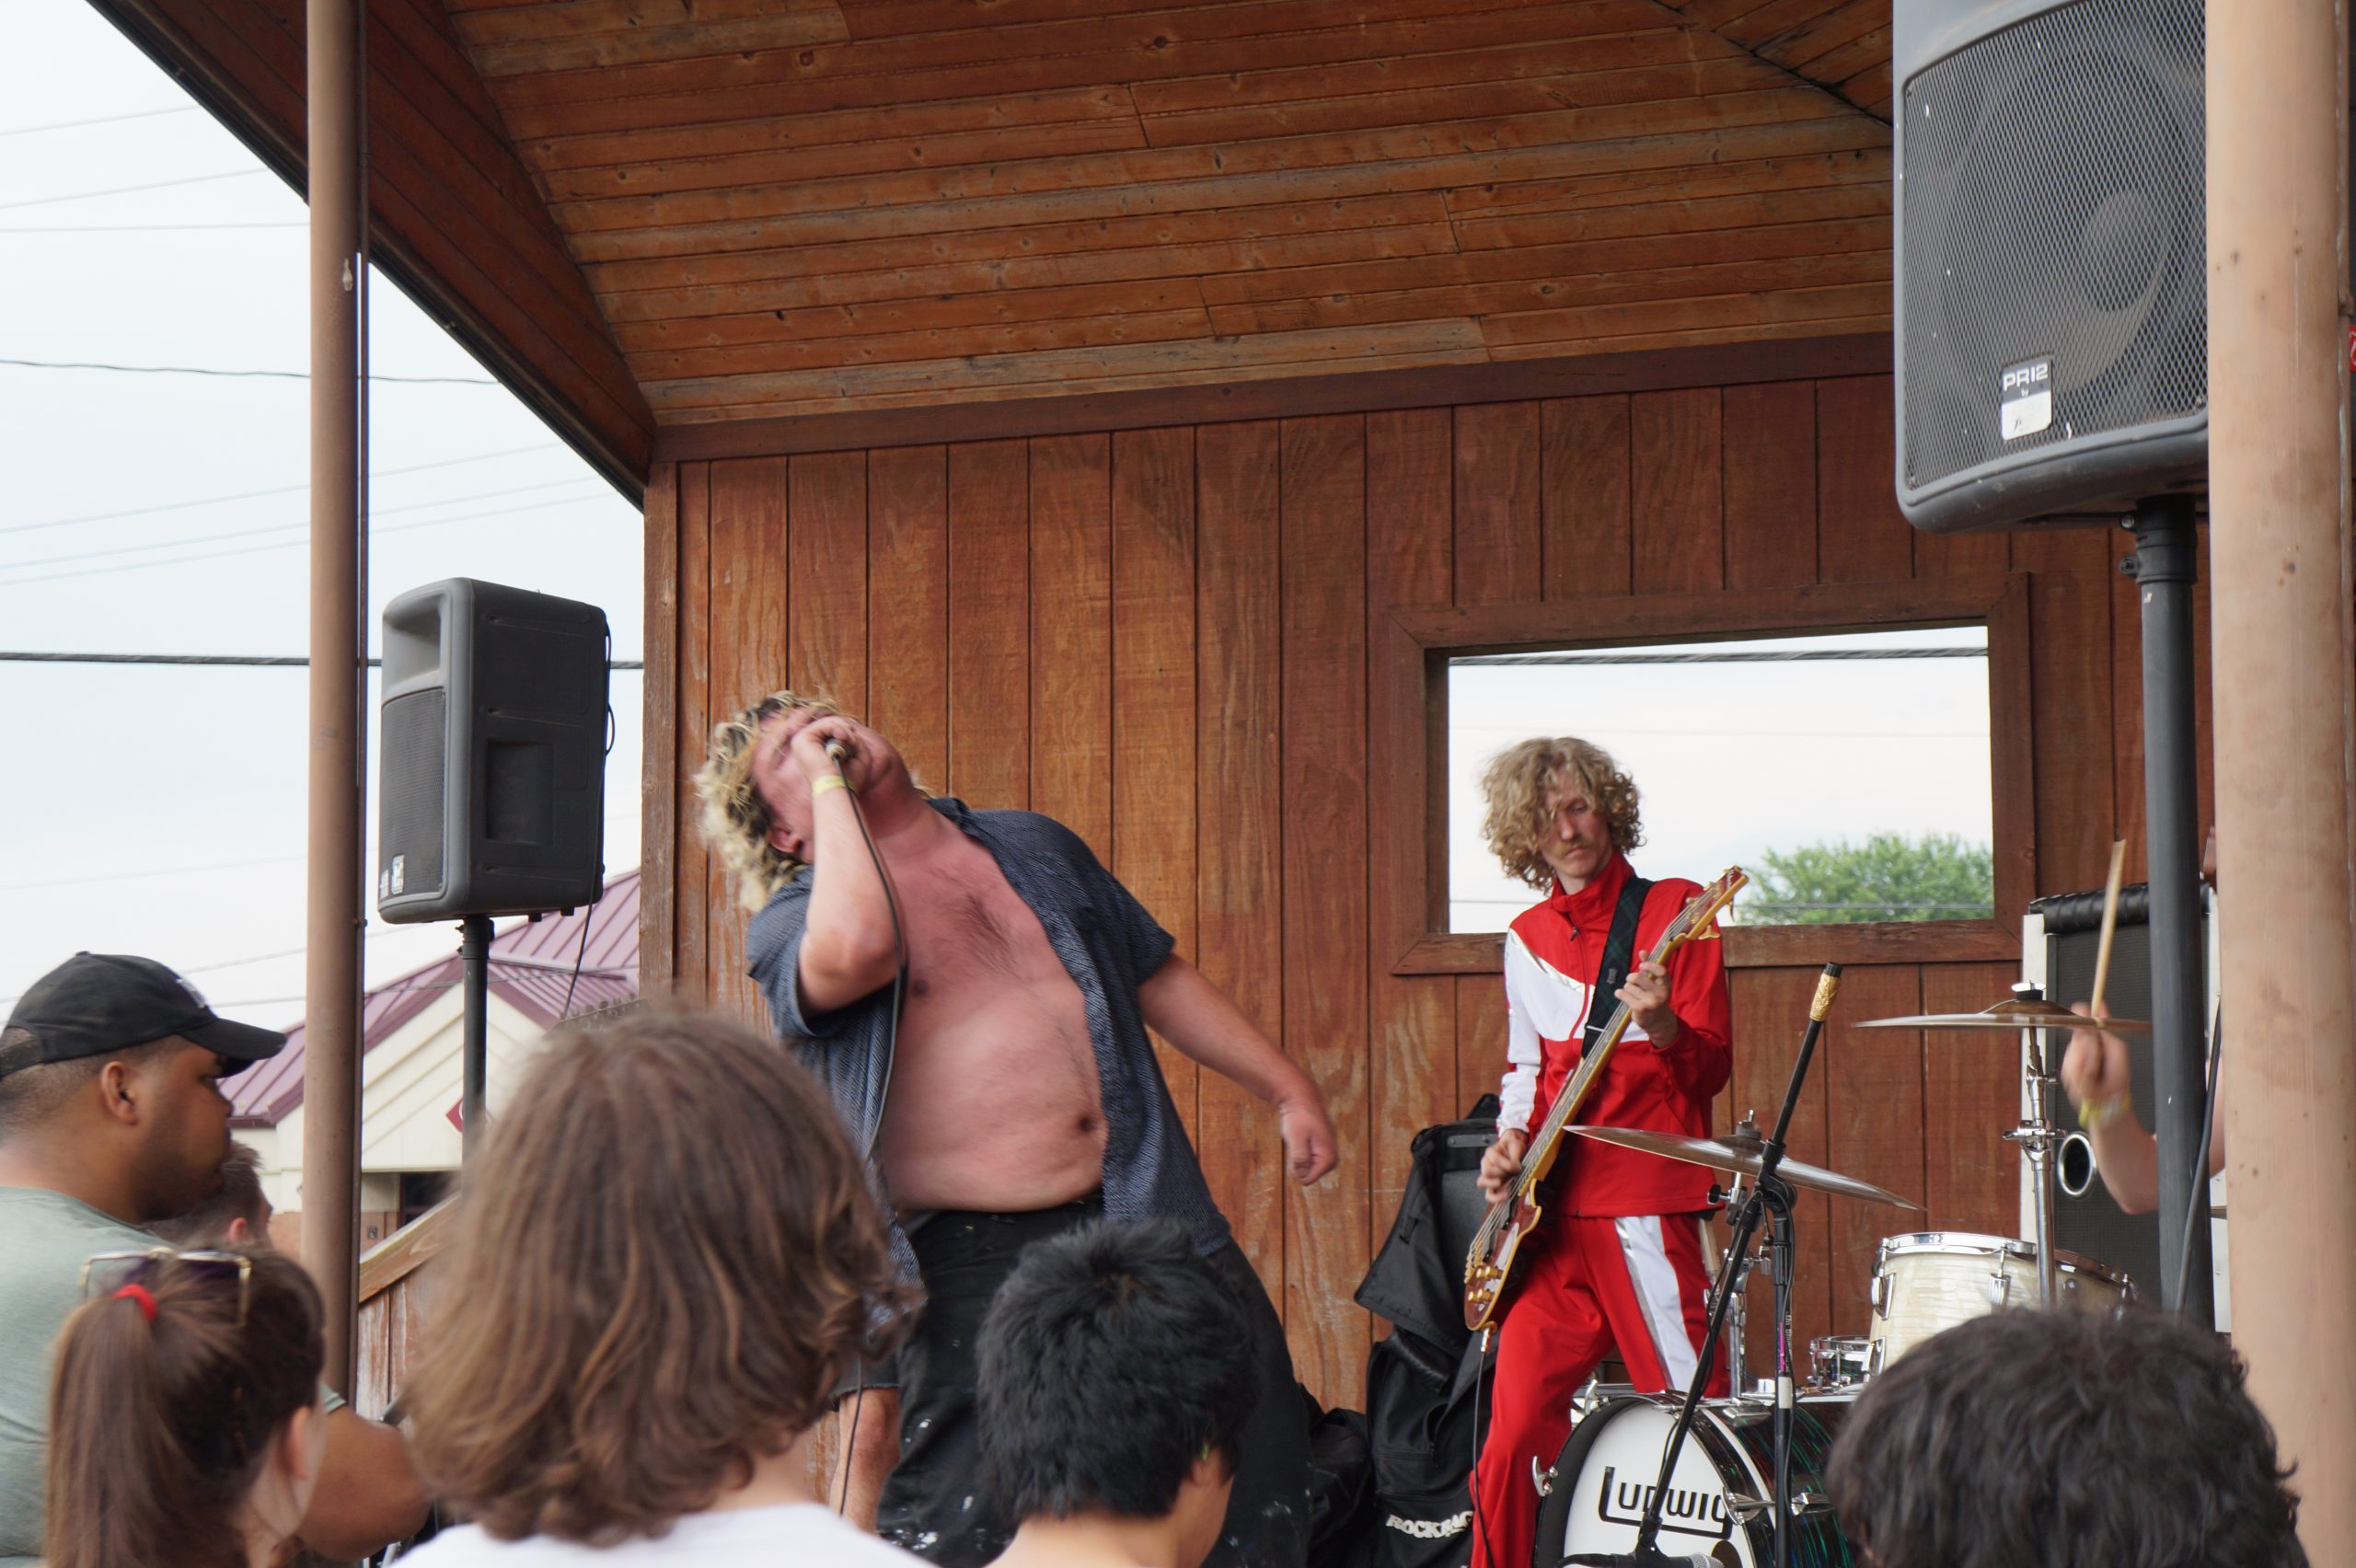 Livin' Thing onstage at Rock 'n' Roll Hardee's